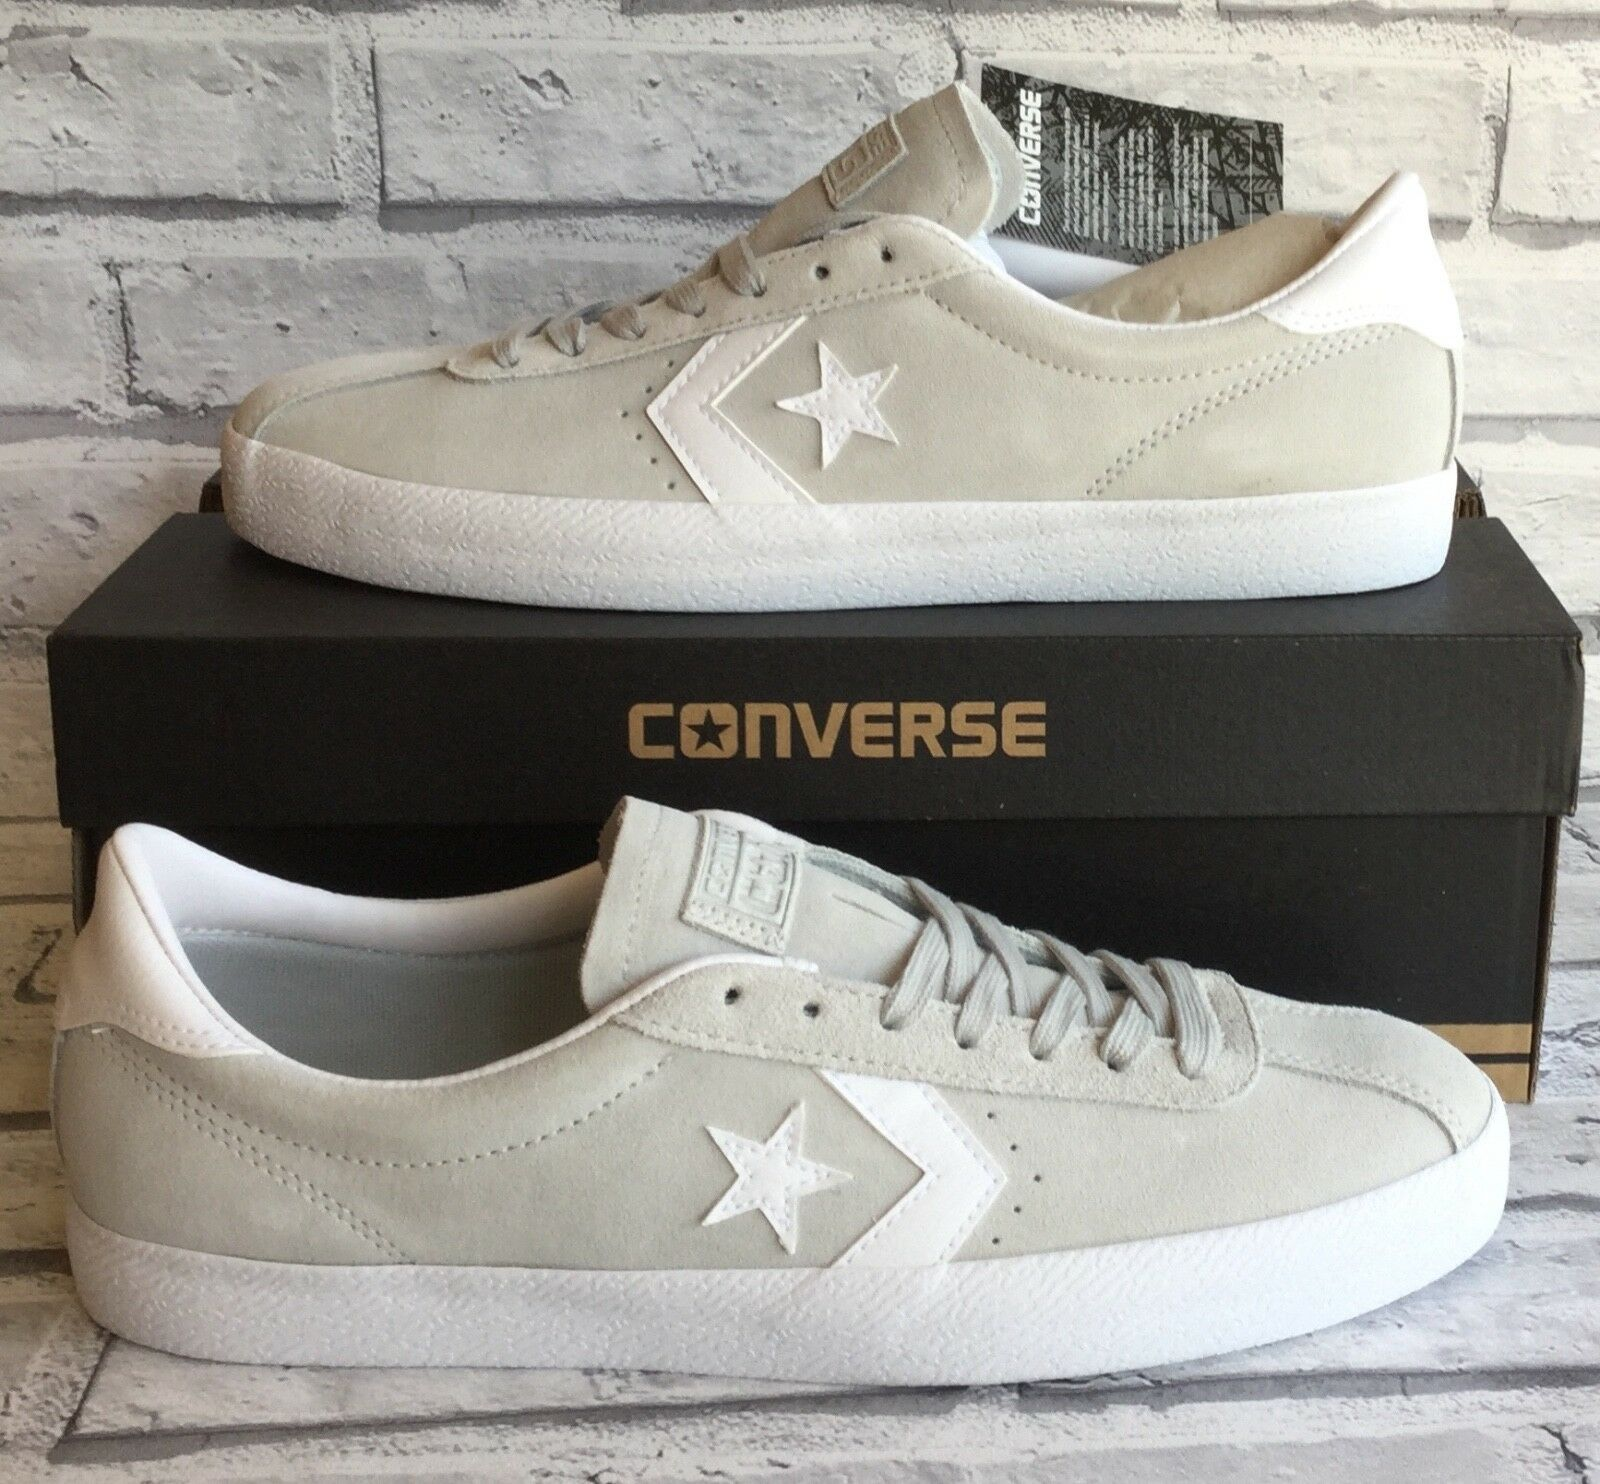 CONVERSE BREAKPOINT OX LO LO LO TOP SUEDE LEATHER MOUSE GREY Weiß 149810C UK 10 / 45 469d7e